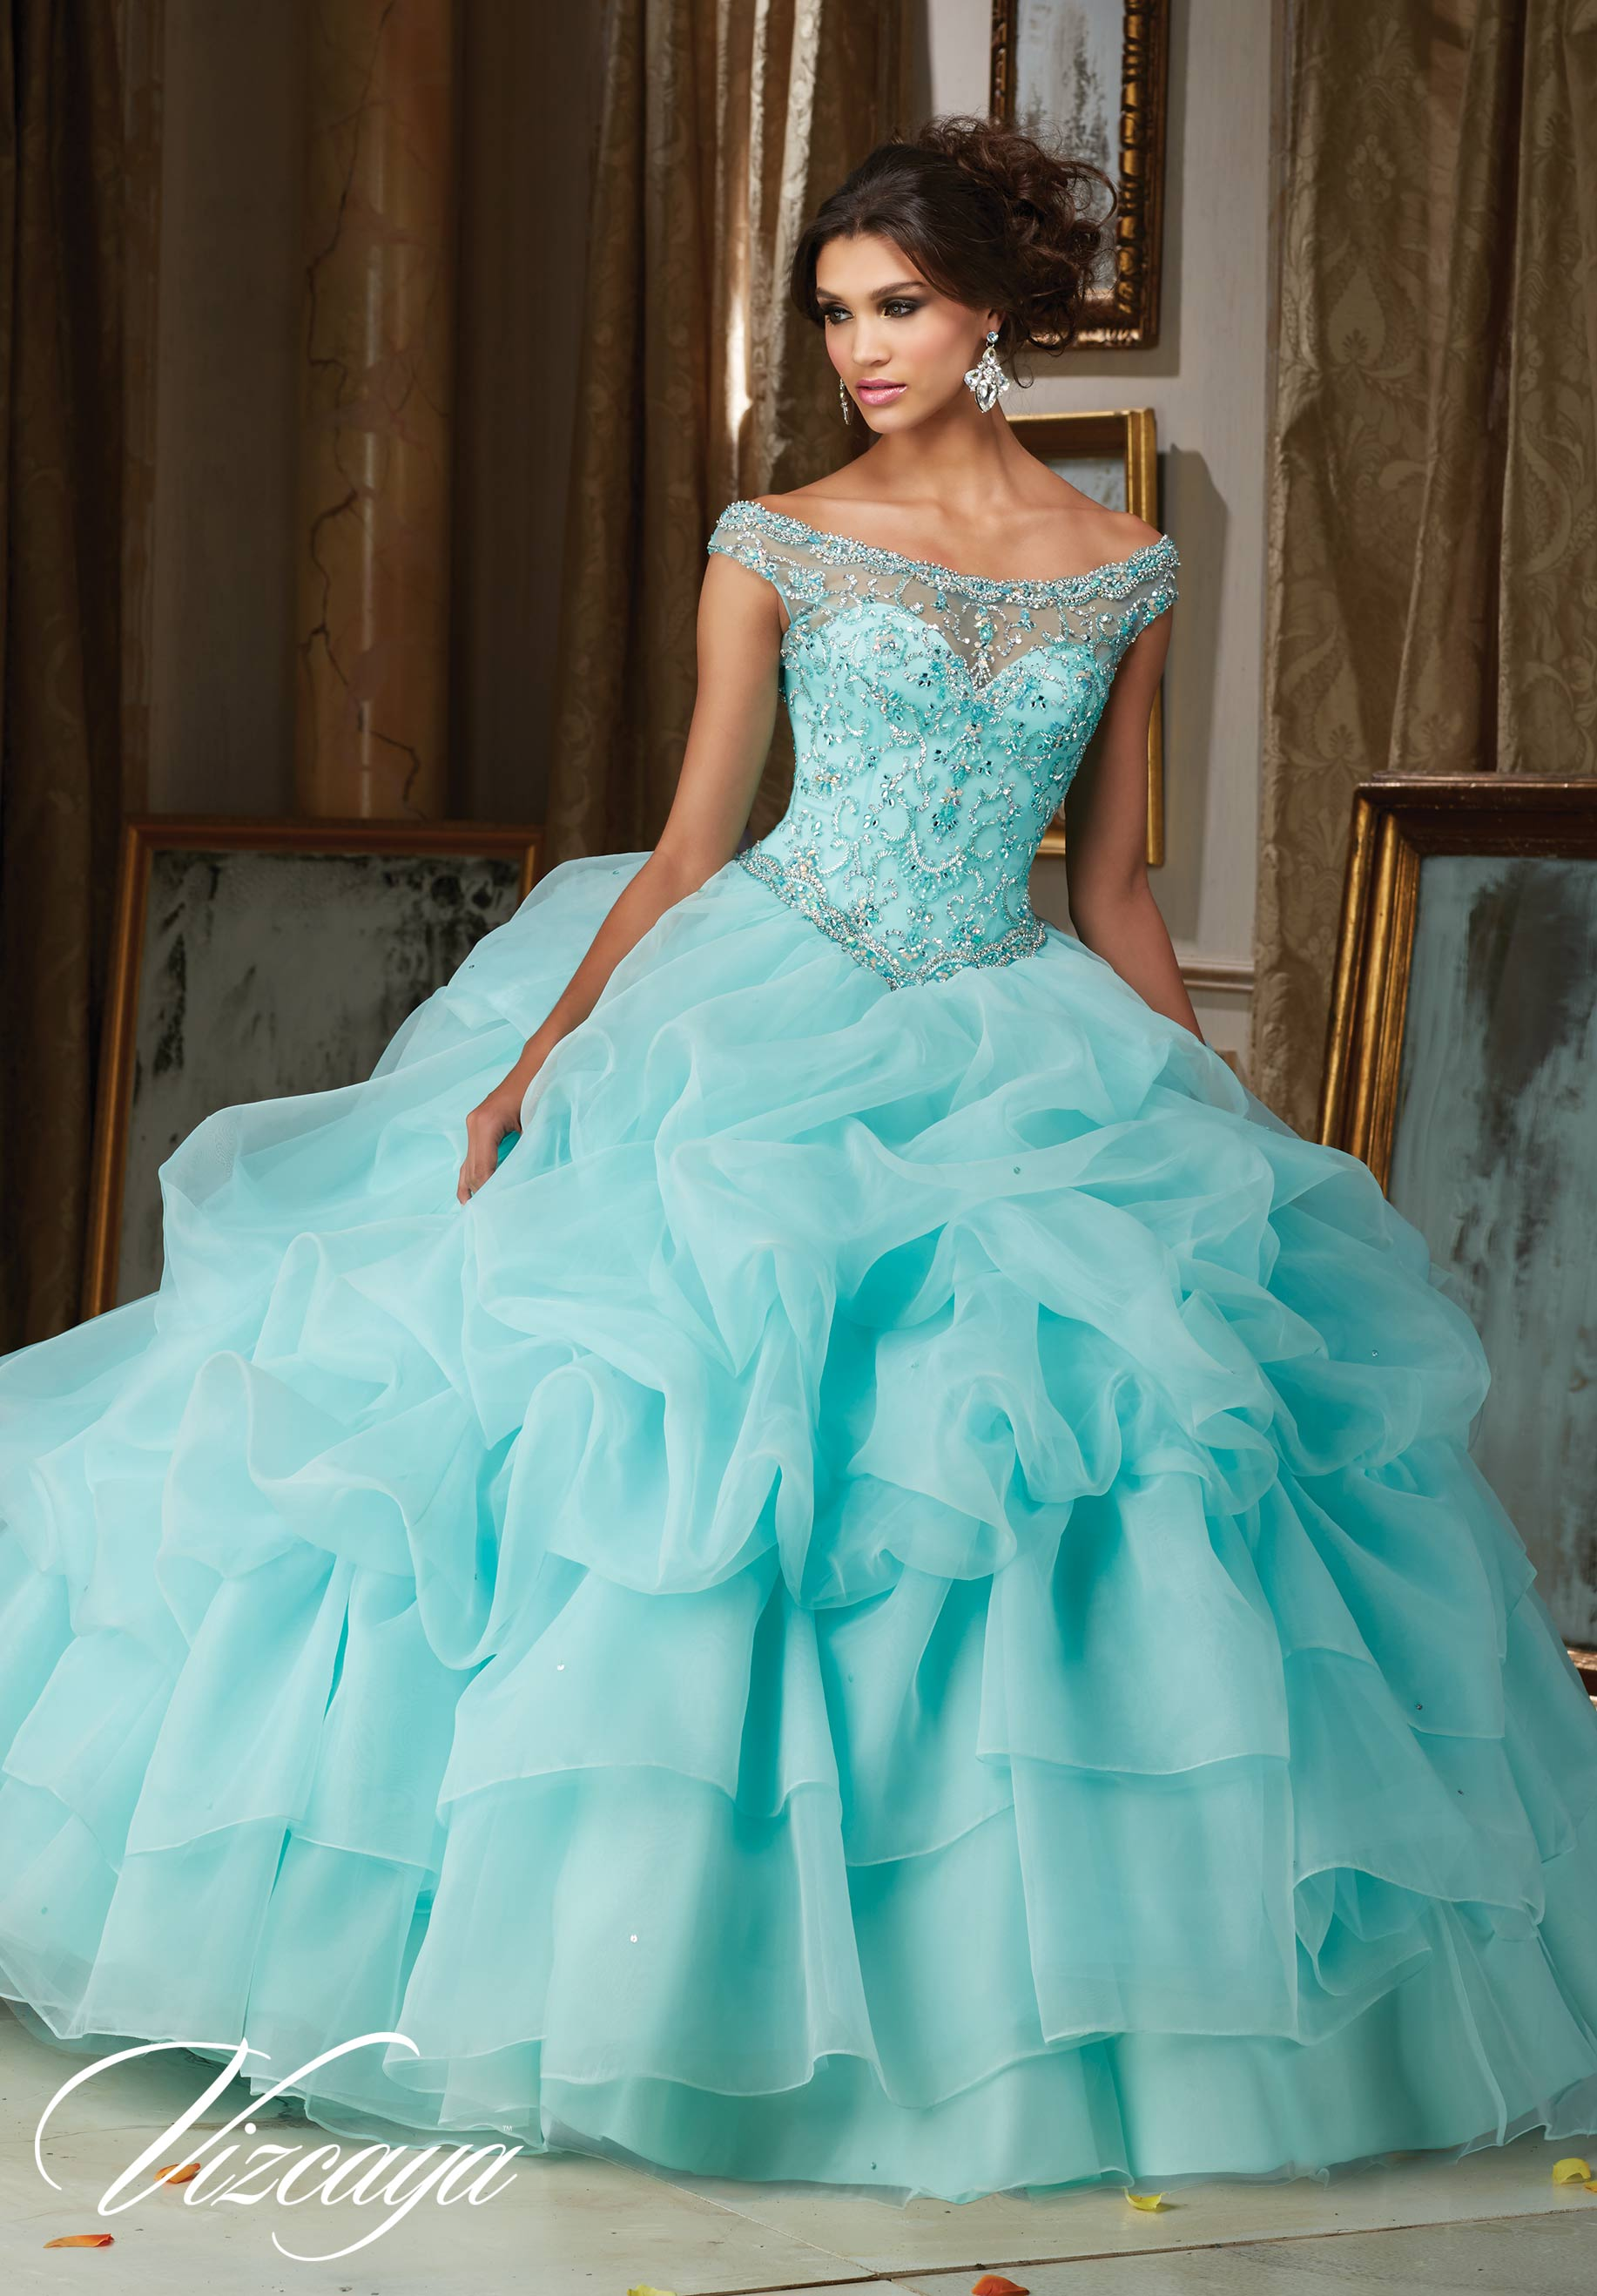 Quinceanera In San Antonio Tx Quinceanera Dresses In San